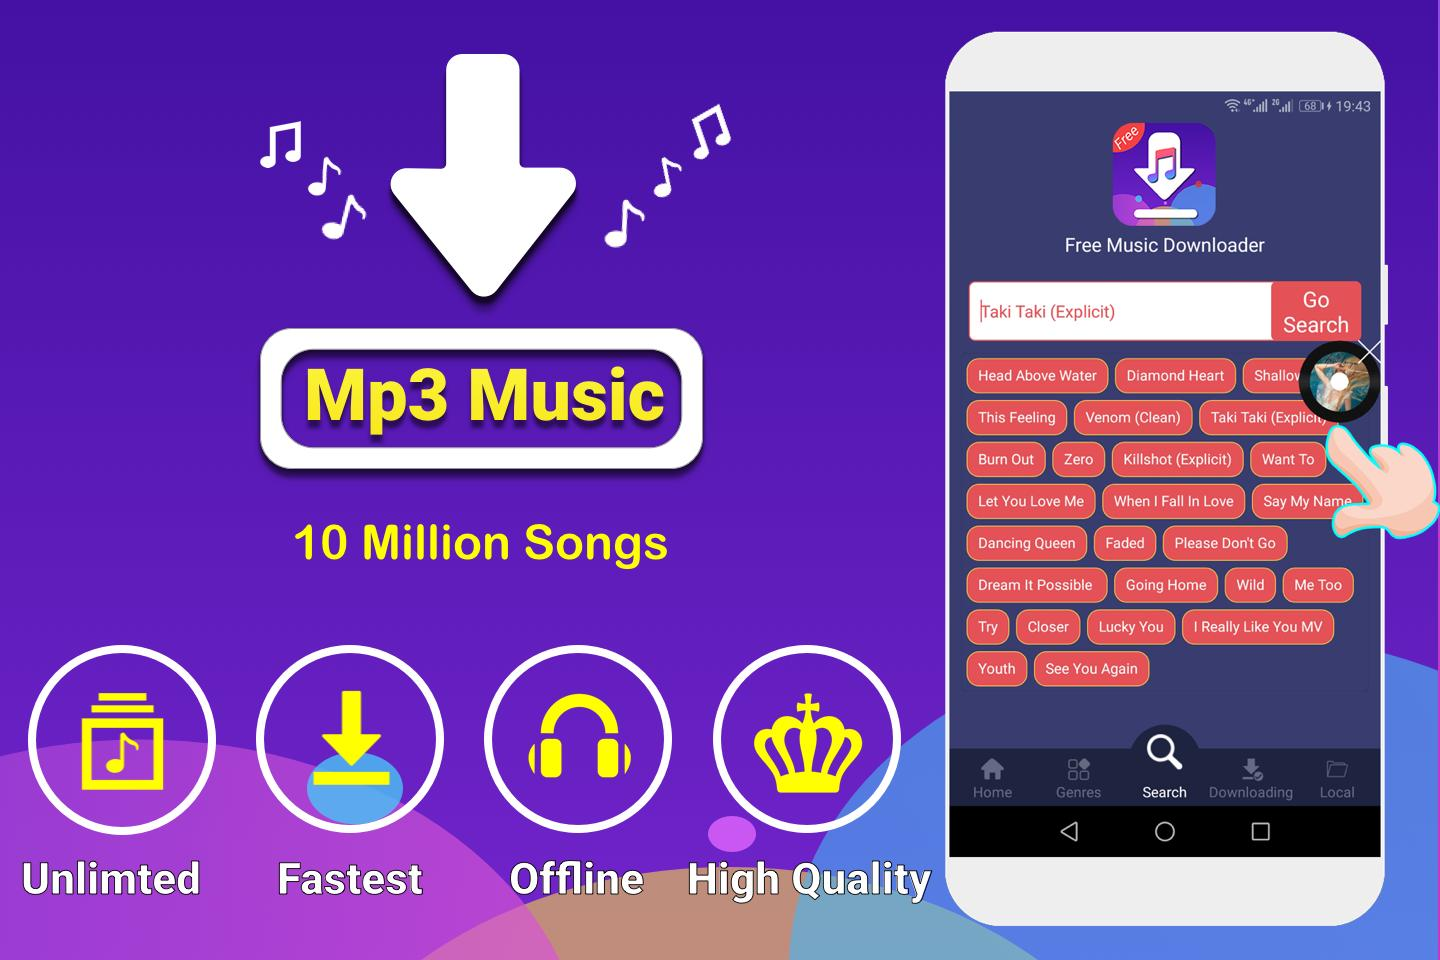 Descargar Musica Gratis Descargar Musica Mp3 For Android Apk Download